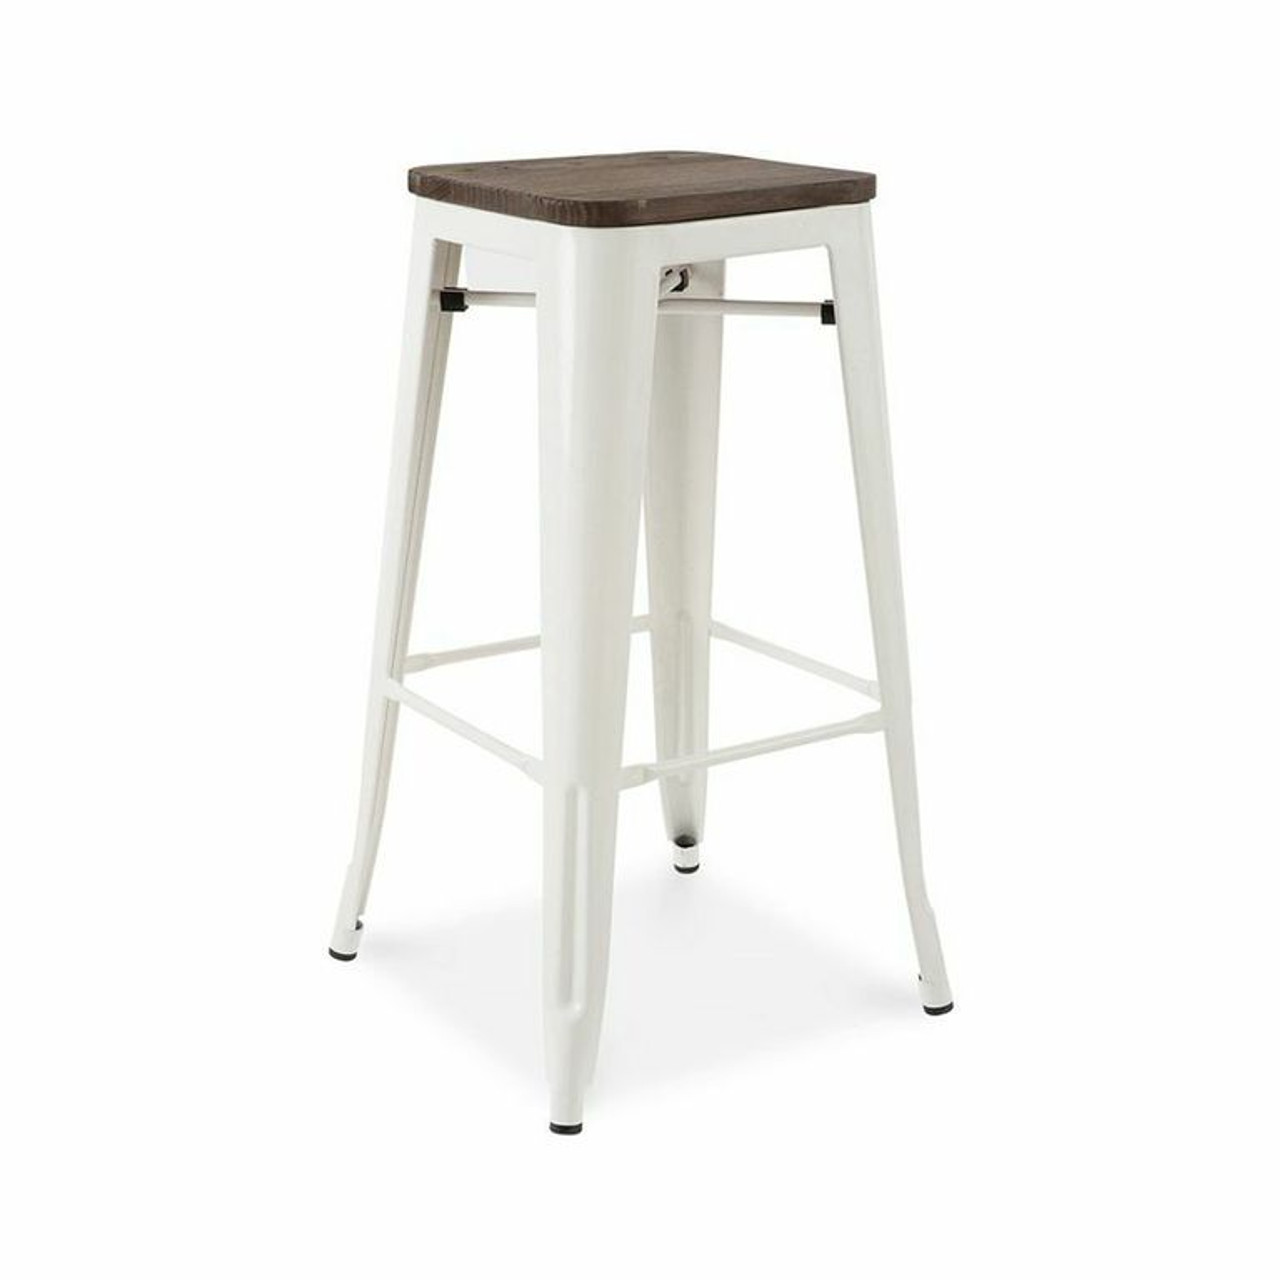 wood metal bar stools. French Industrial Wood And Metal Bar Stools (Set Of 4) A